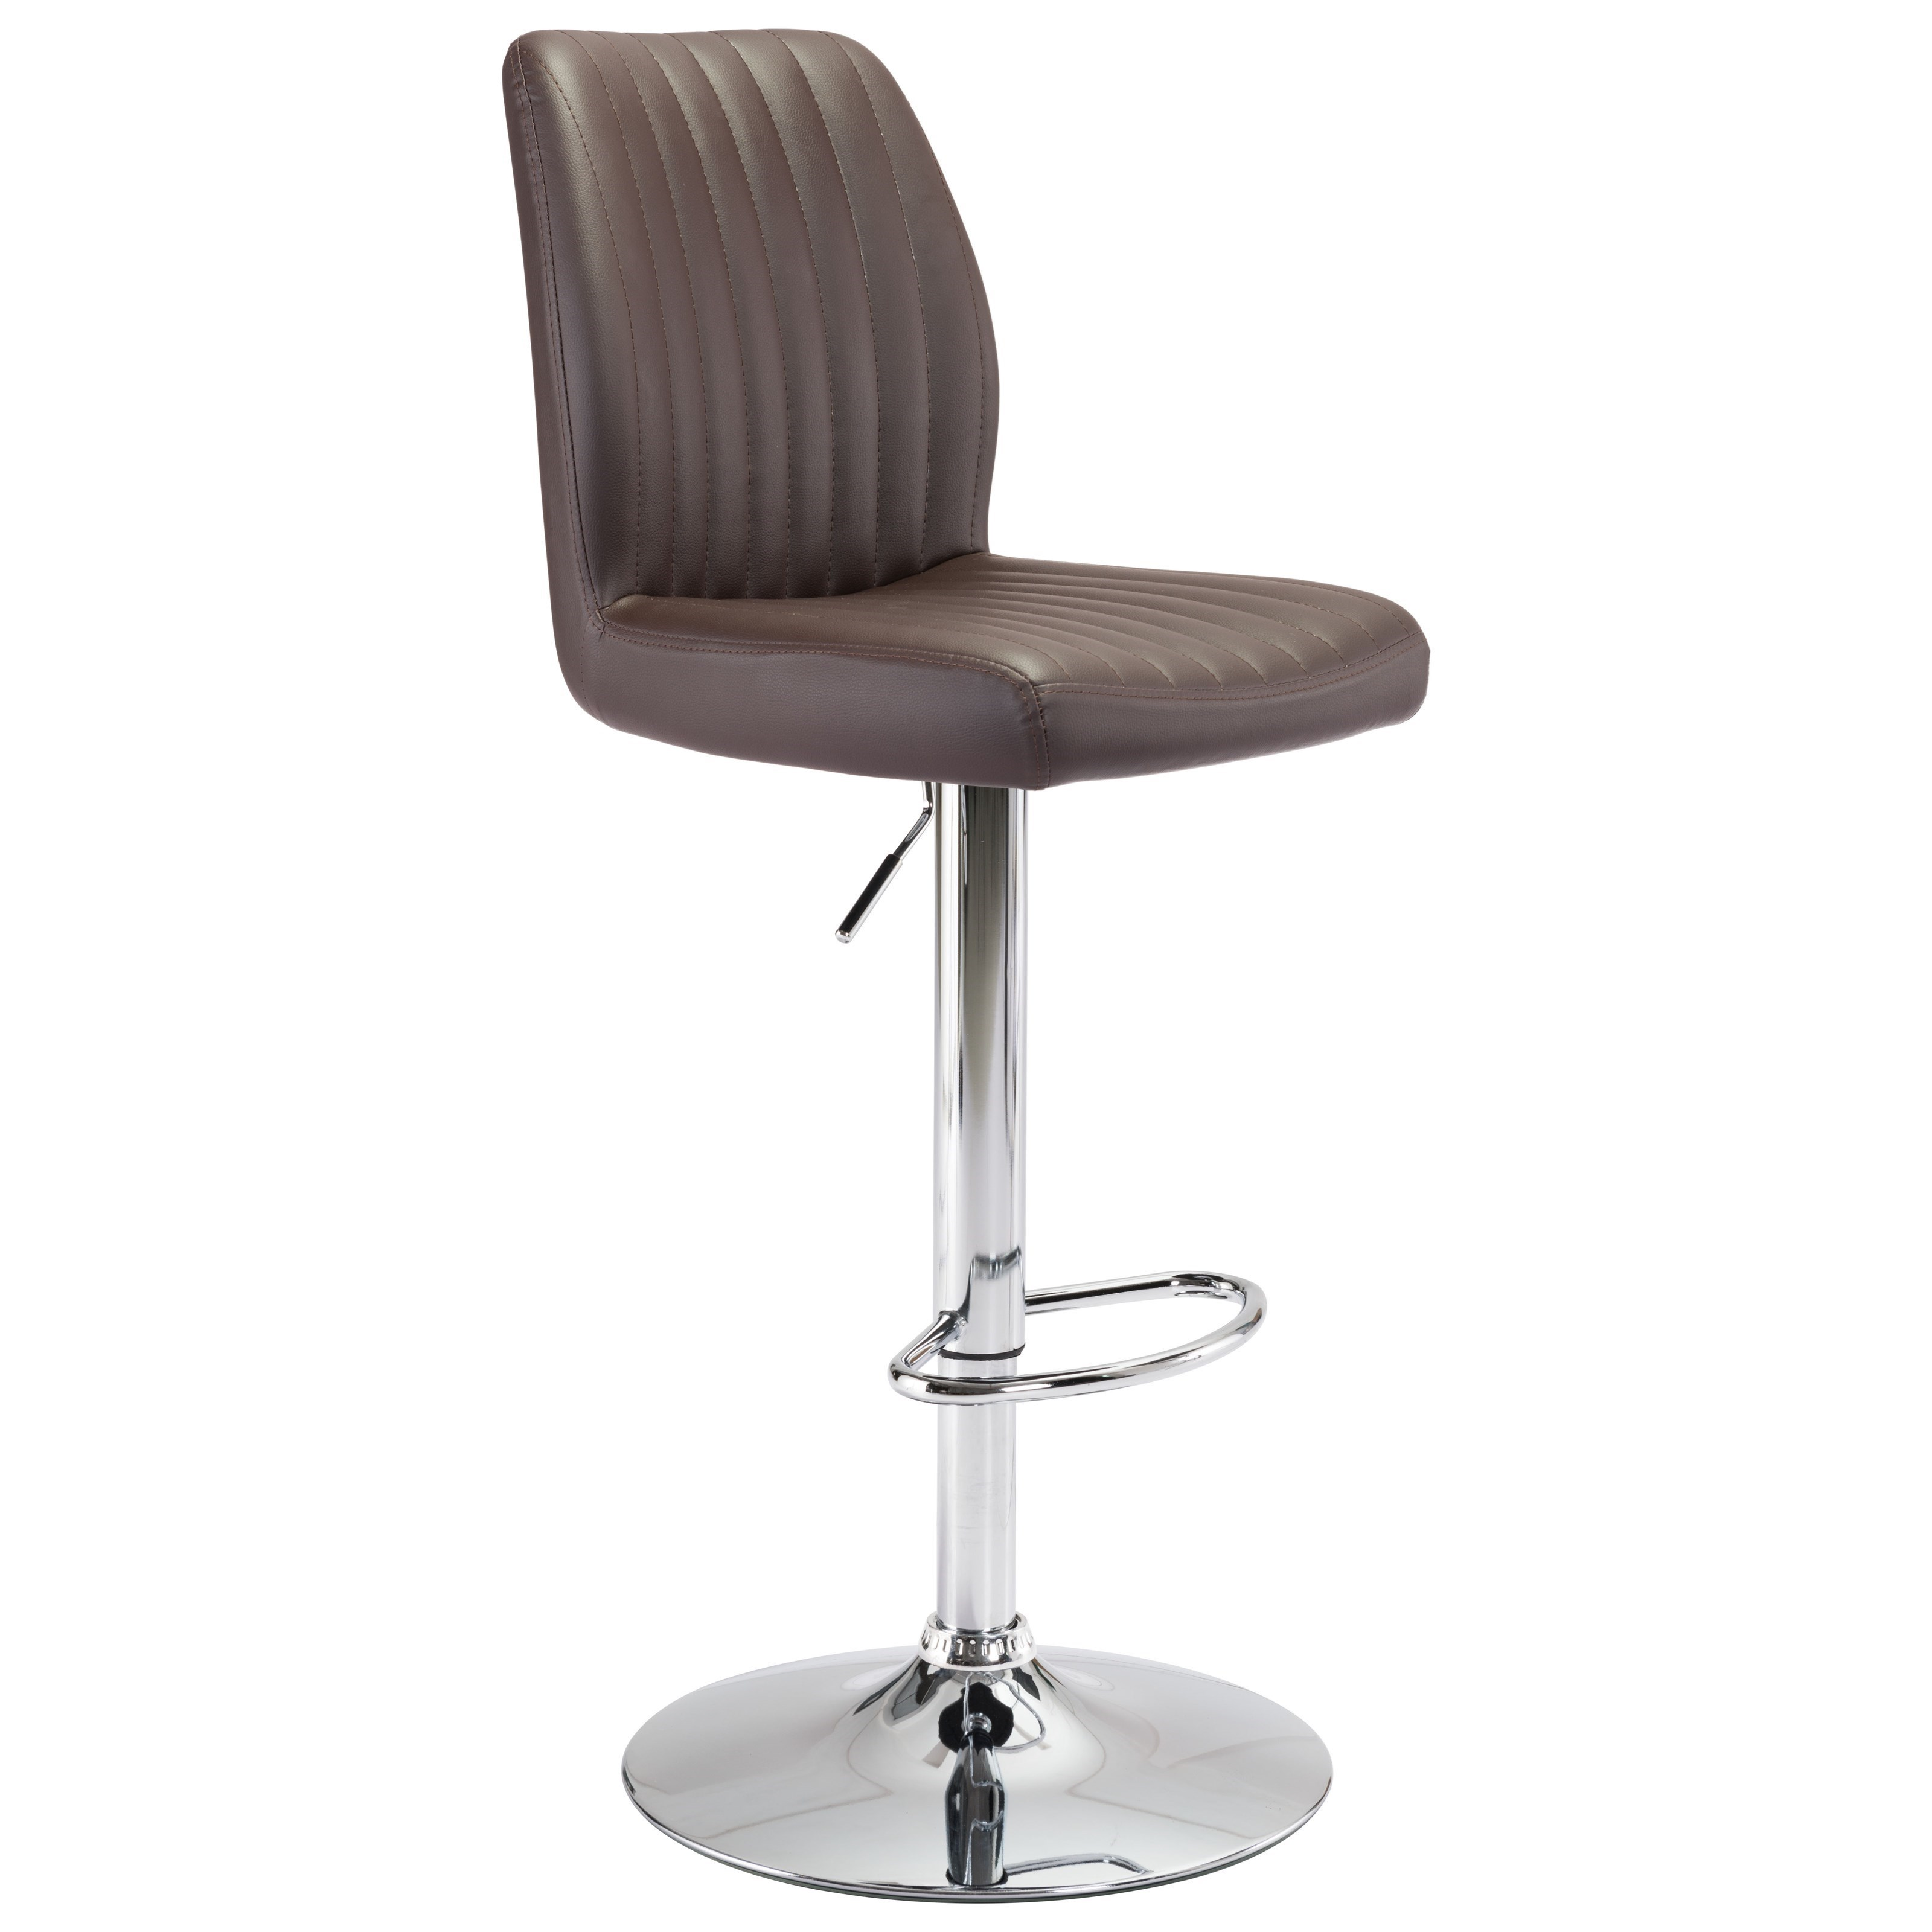 Willful Bar Chair by Zuo at Nassau Furniture and Mattress